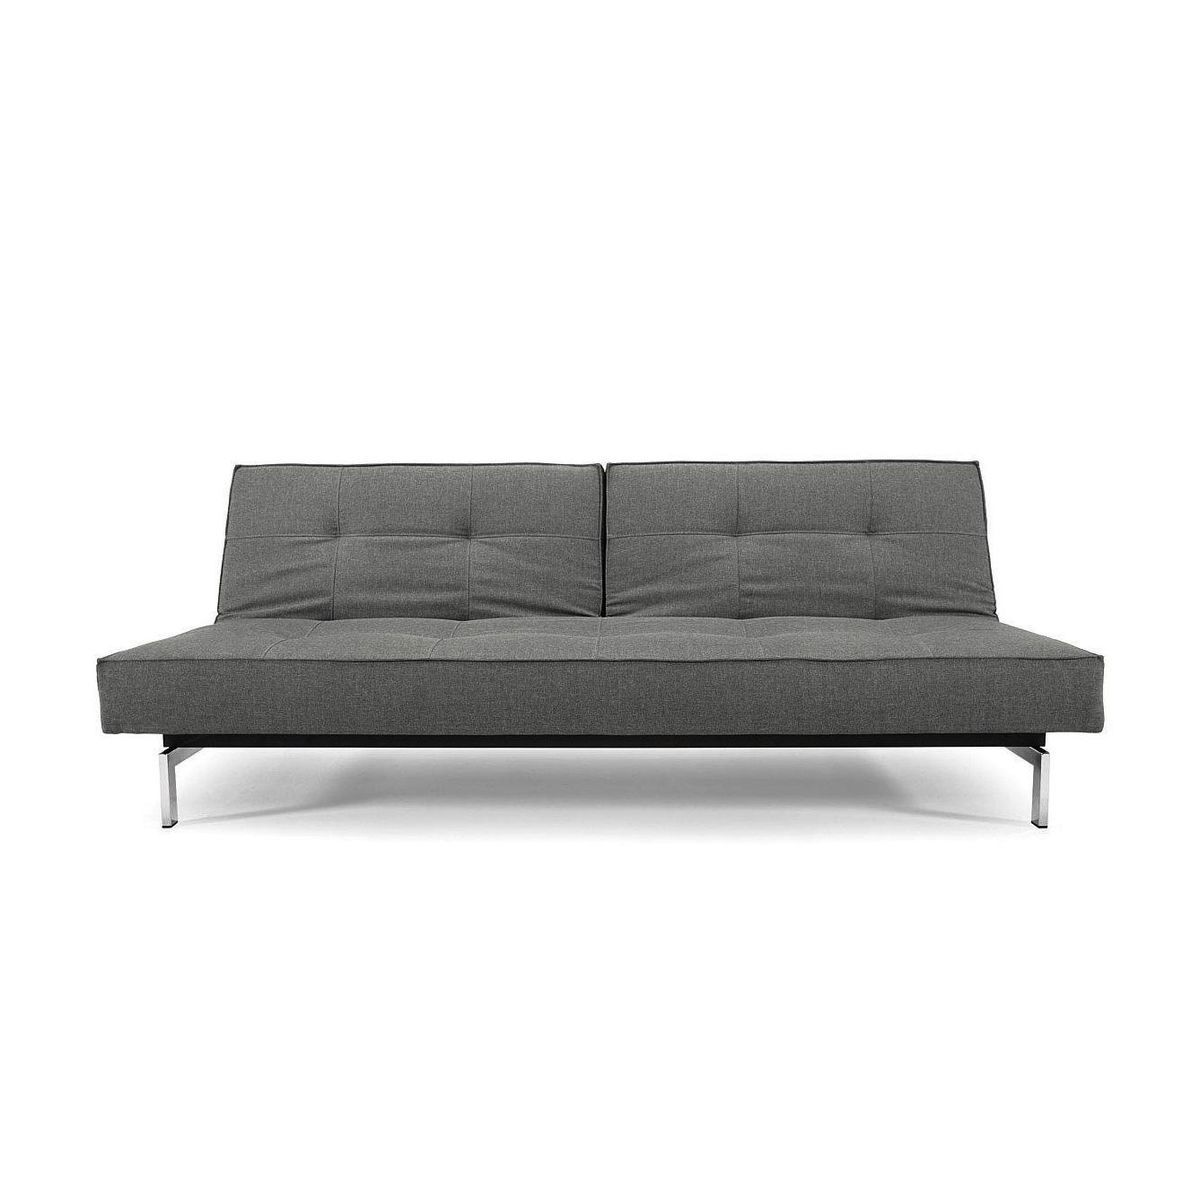 splitback sofa bed chrome  innovation  ambientedirectcom - innovation  splitback sofa bed  greyfabric  flashtex dark greyframechrome